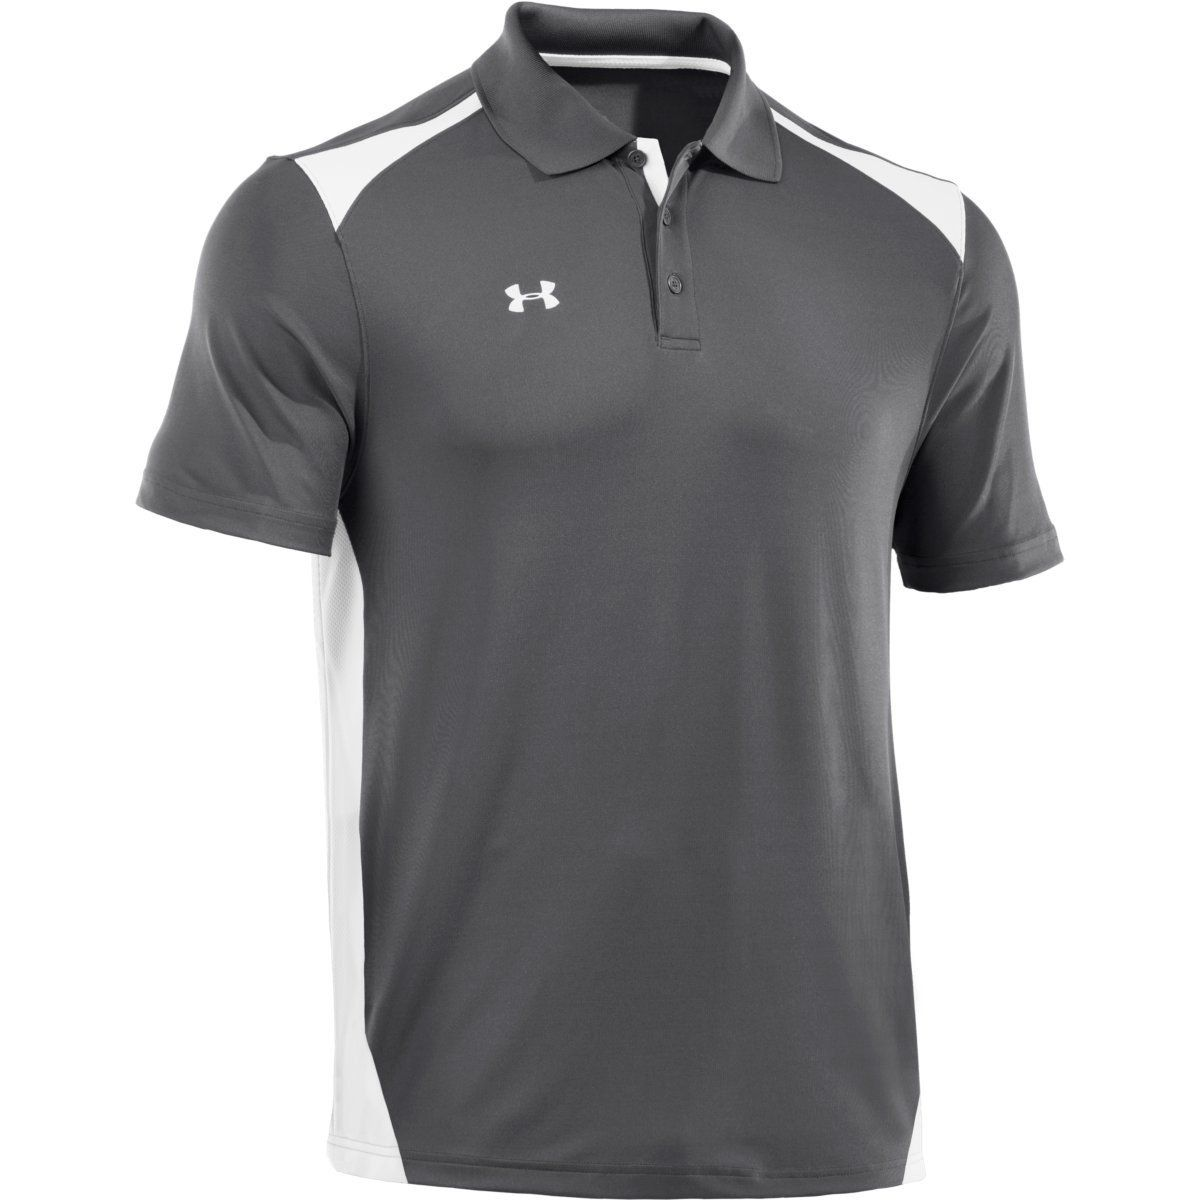 09fc0fa2b20d2 Under Armour Men s Graphite White Colorblock Polo